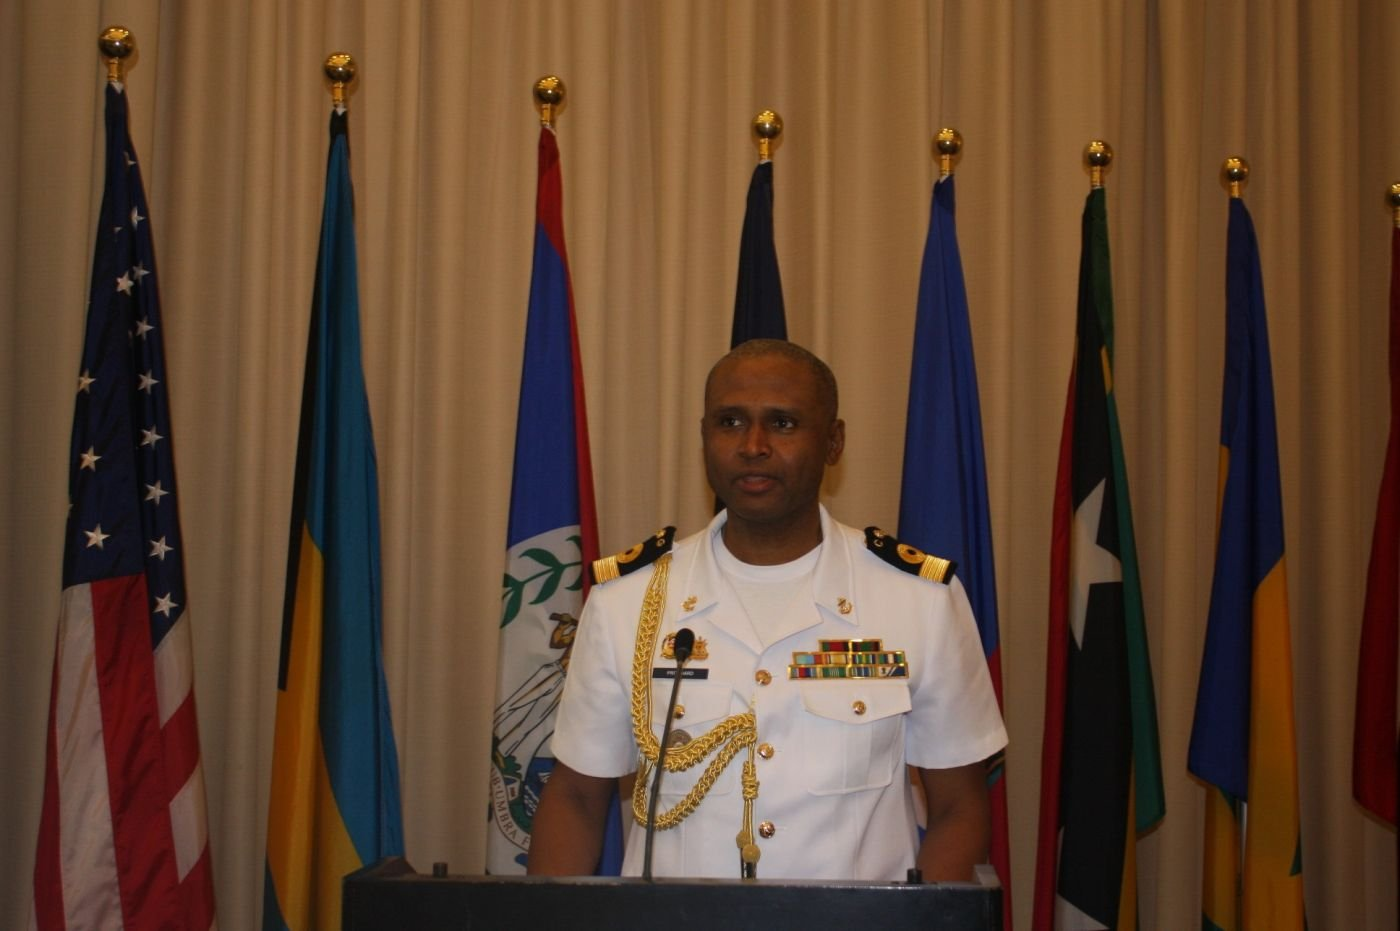 Caribbean Commitment against Illicit Networks